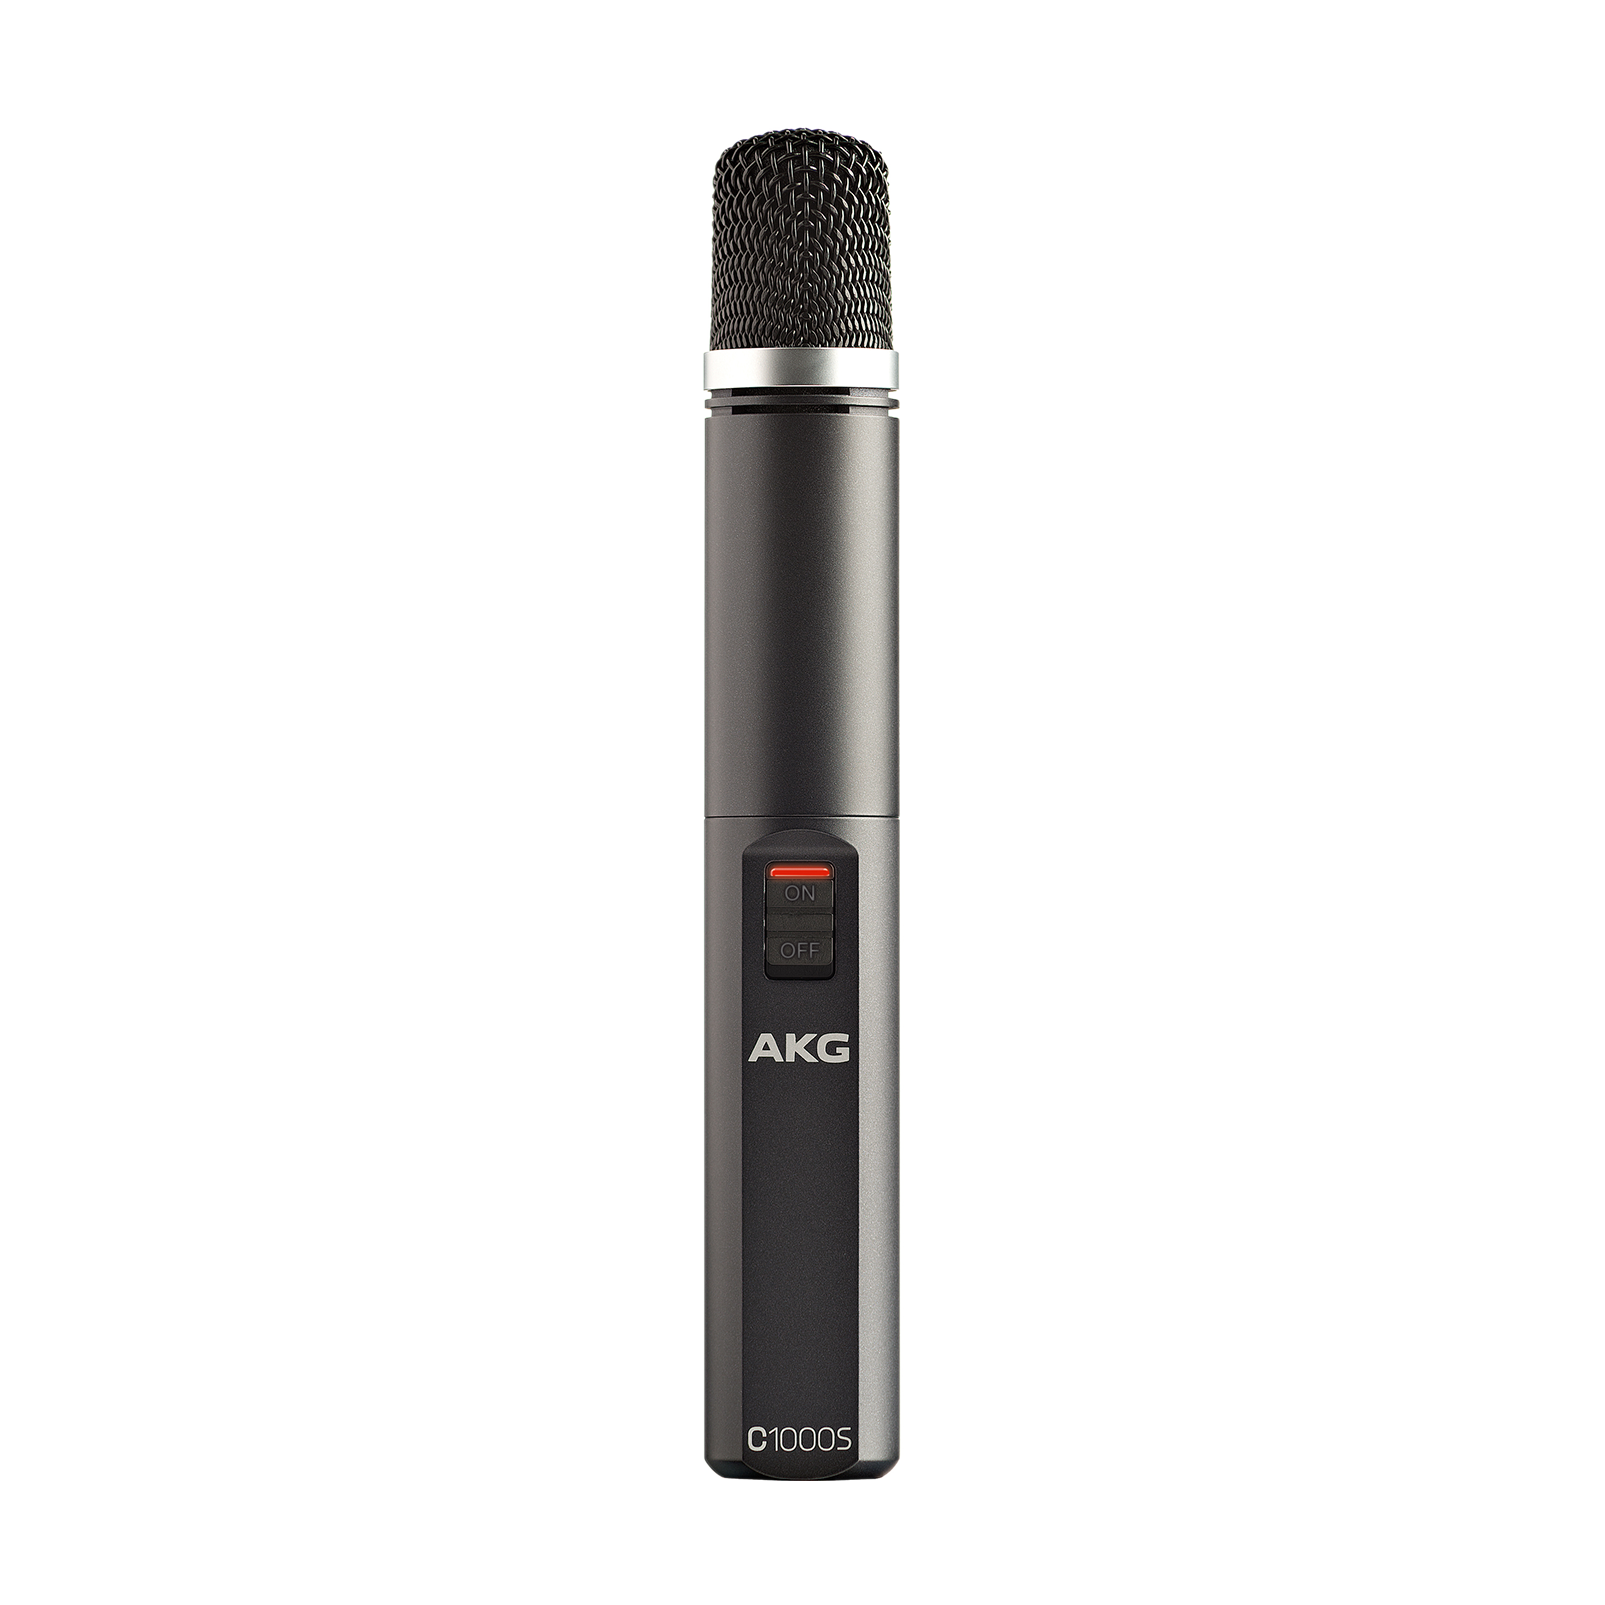 AKG C1000 S Condenser Professional Recording / Podcast Microphone